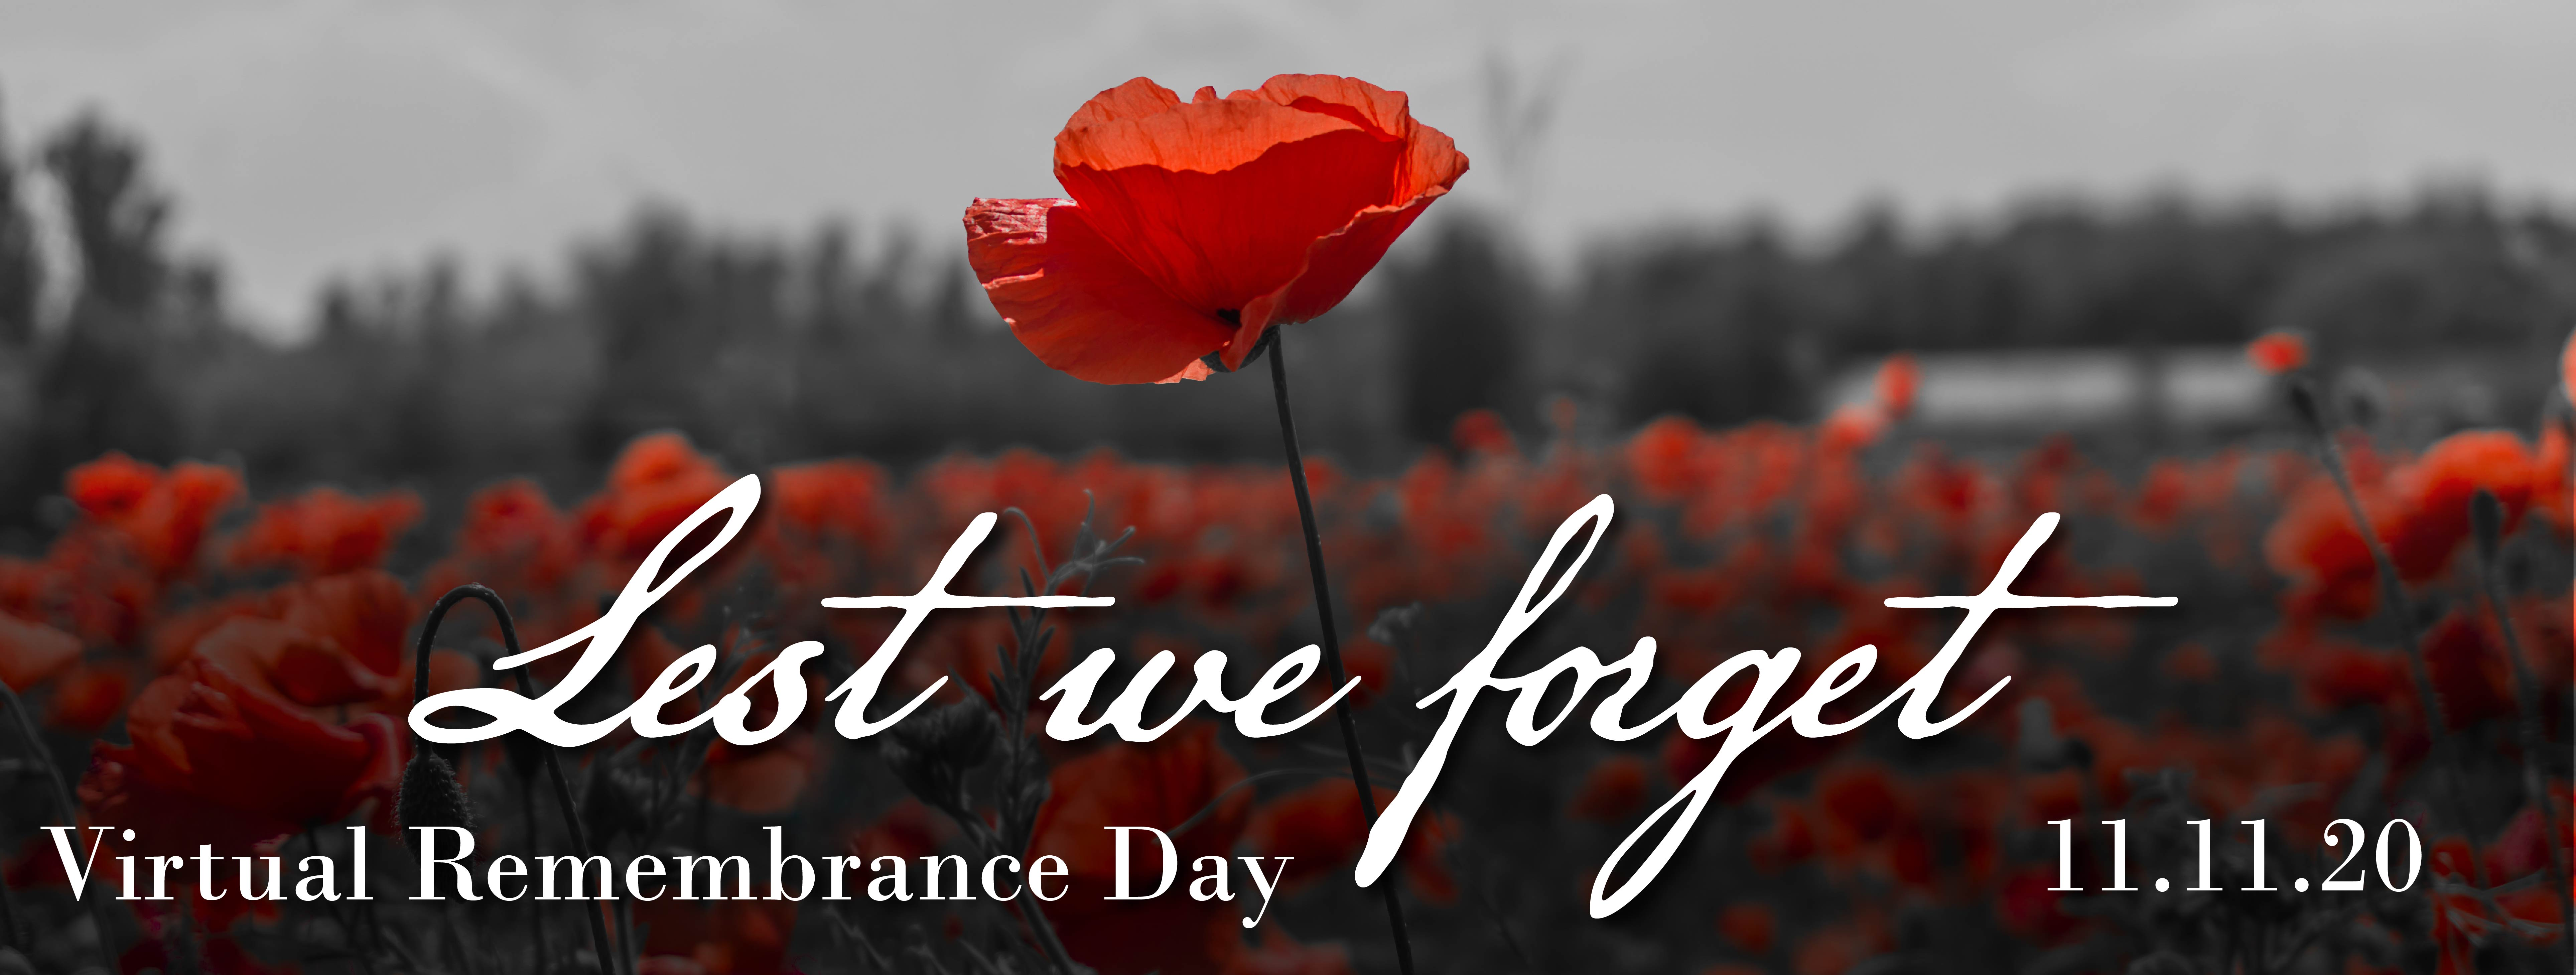 Banner Image for the Virtual Remembrance Day event